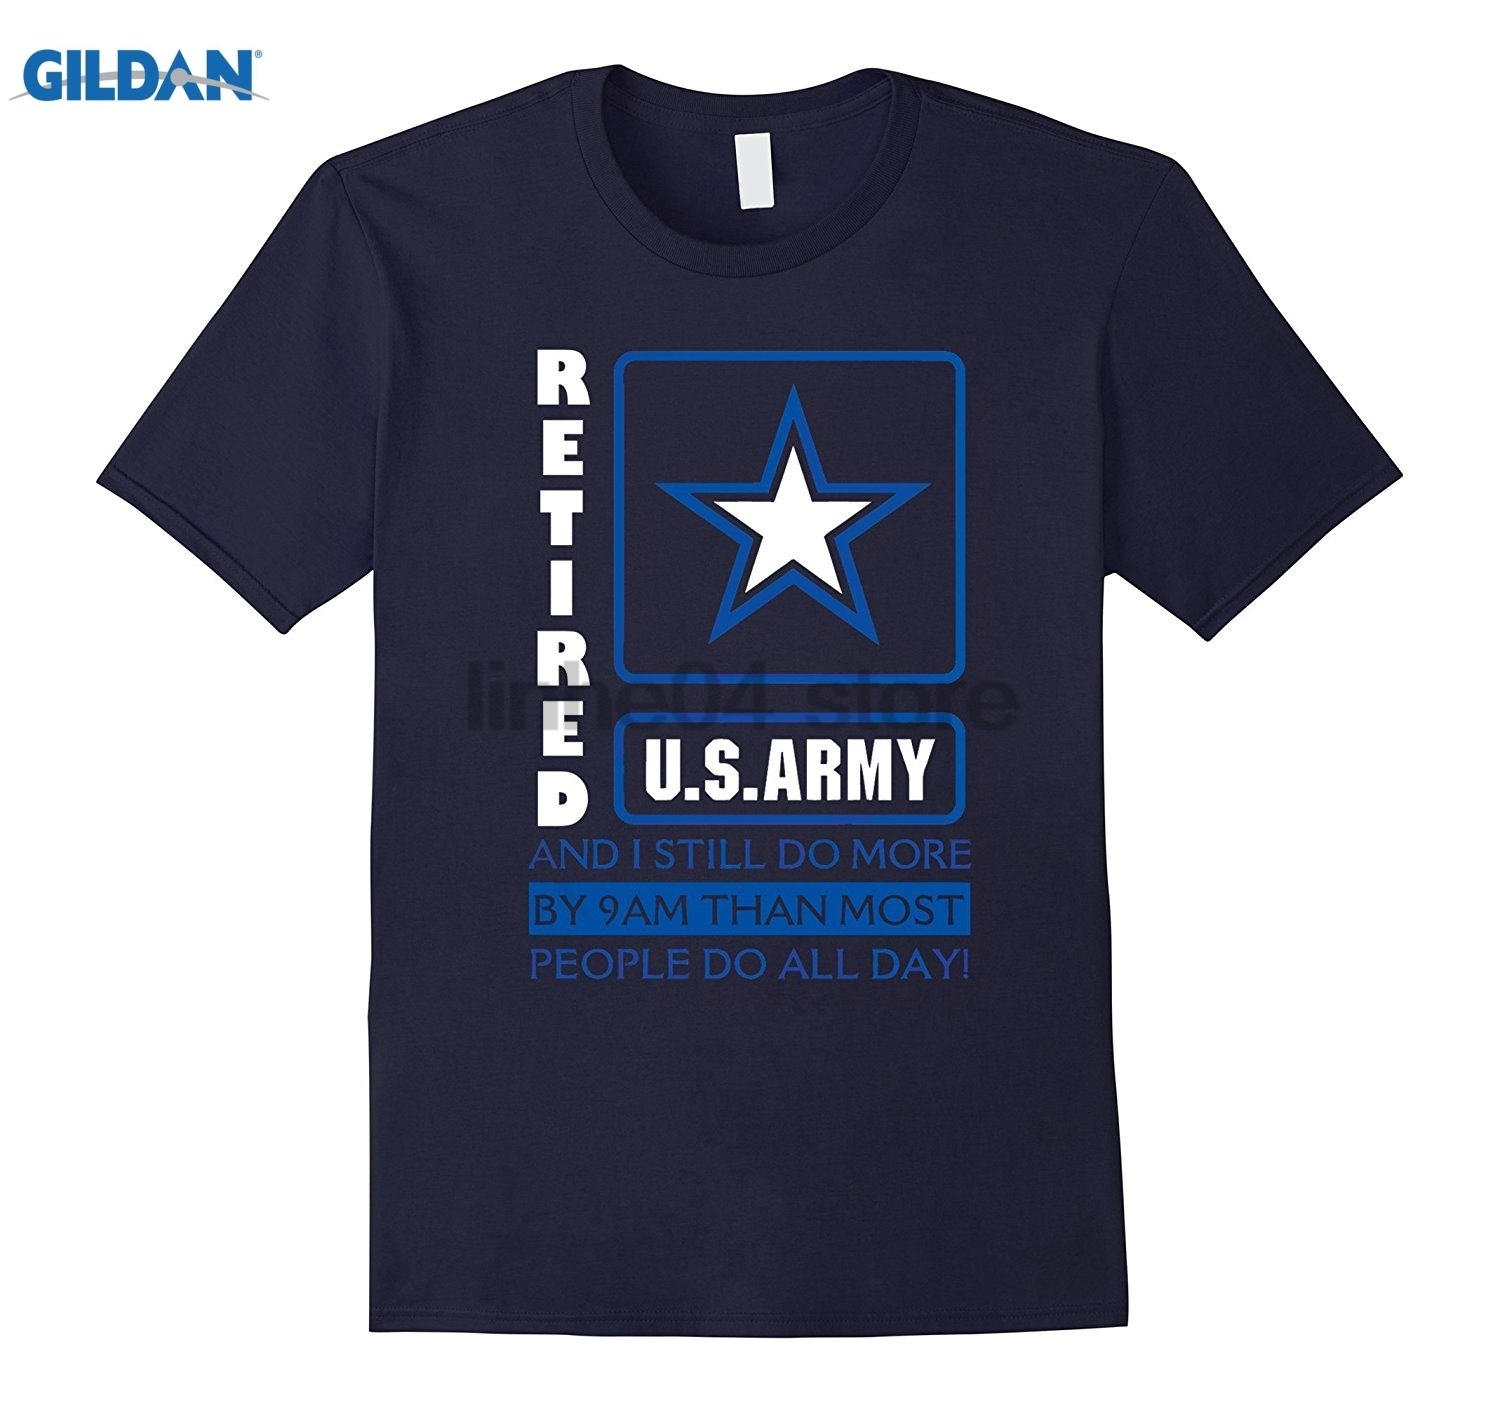 GILDAN U.S ARMY T Shirt Mothers Day Ms. T-shirt Dress female T-shirt